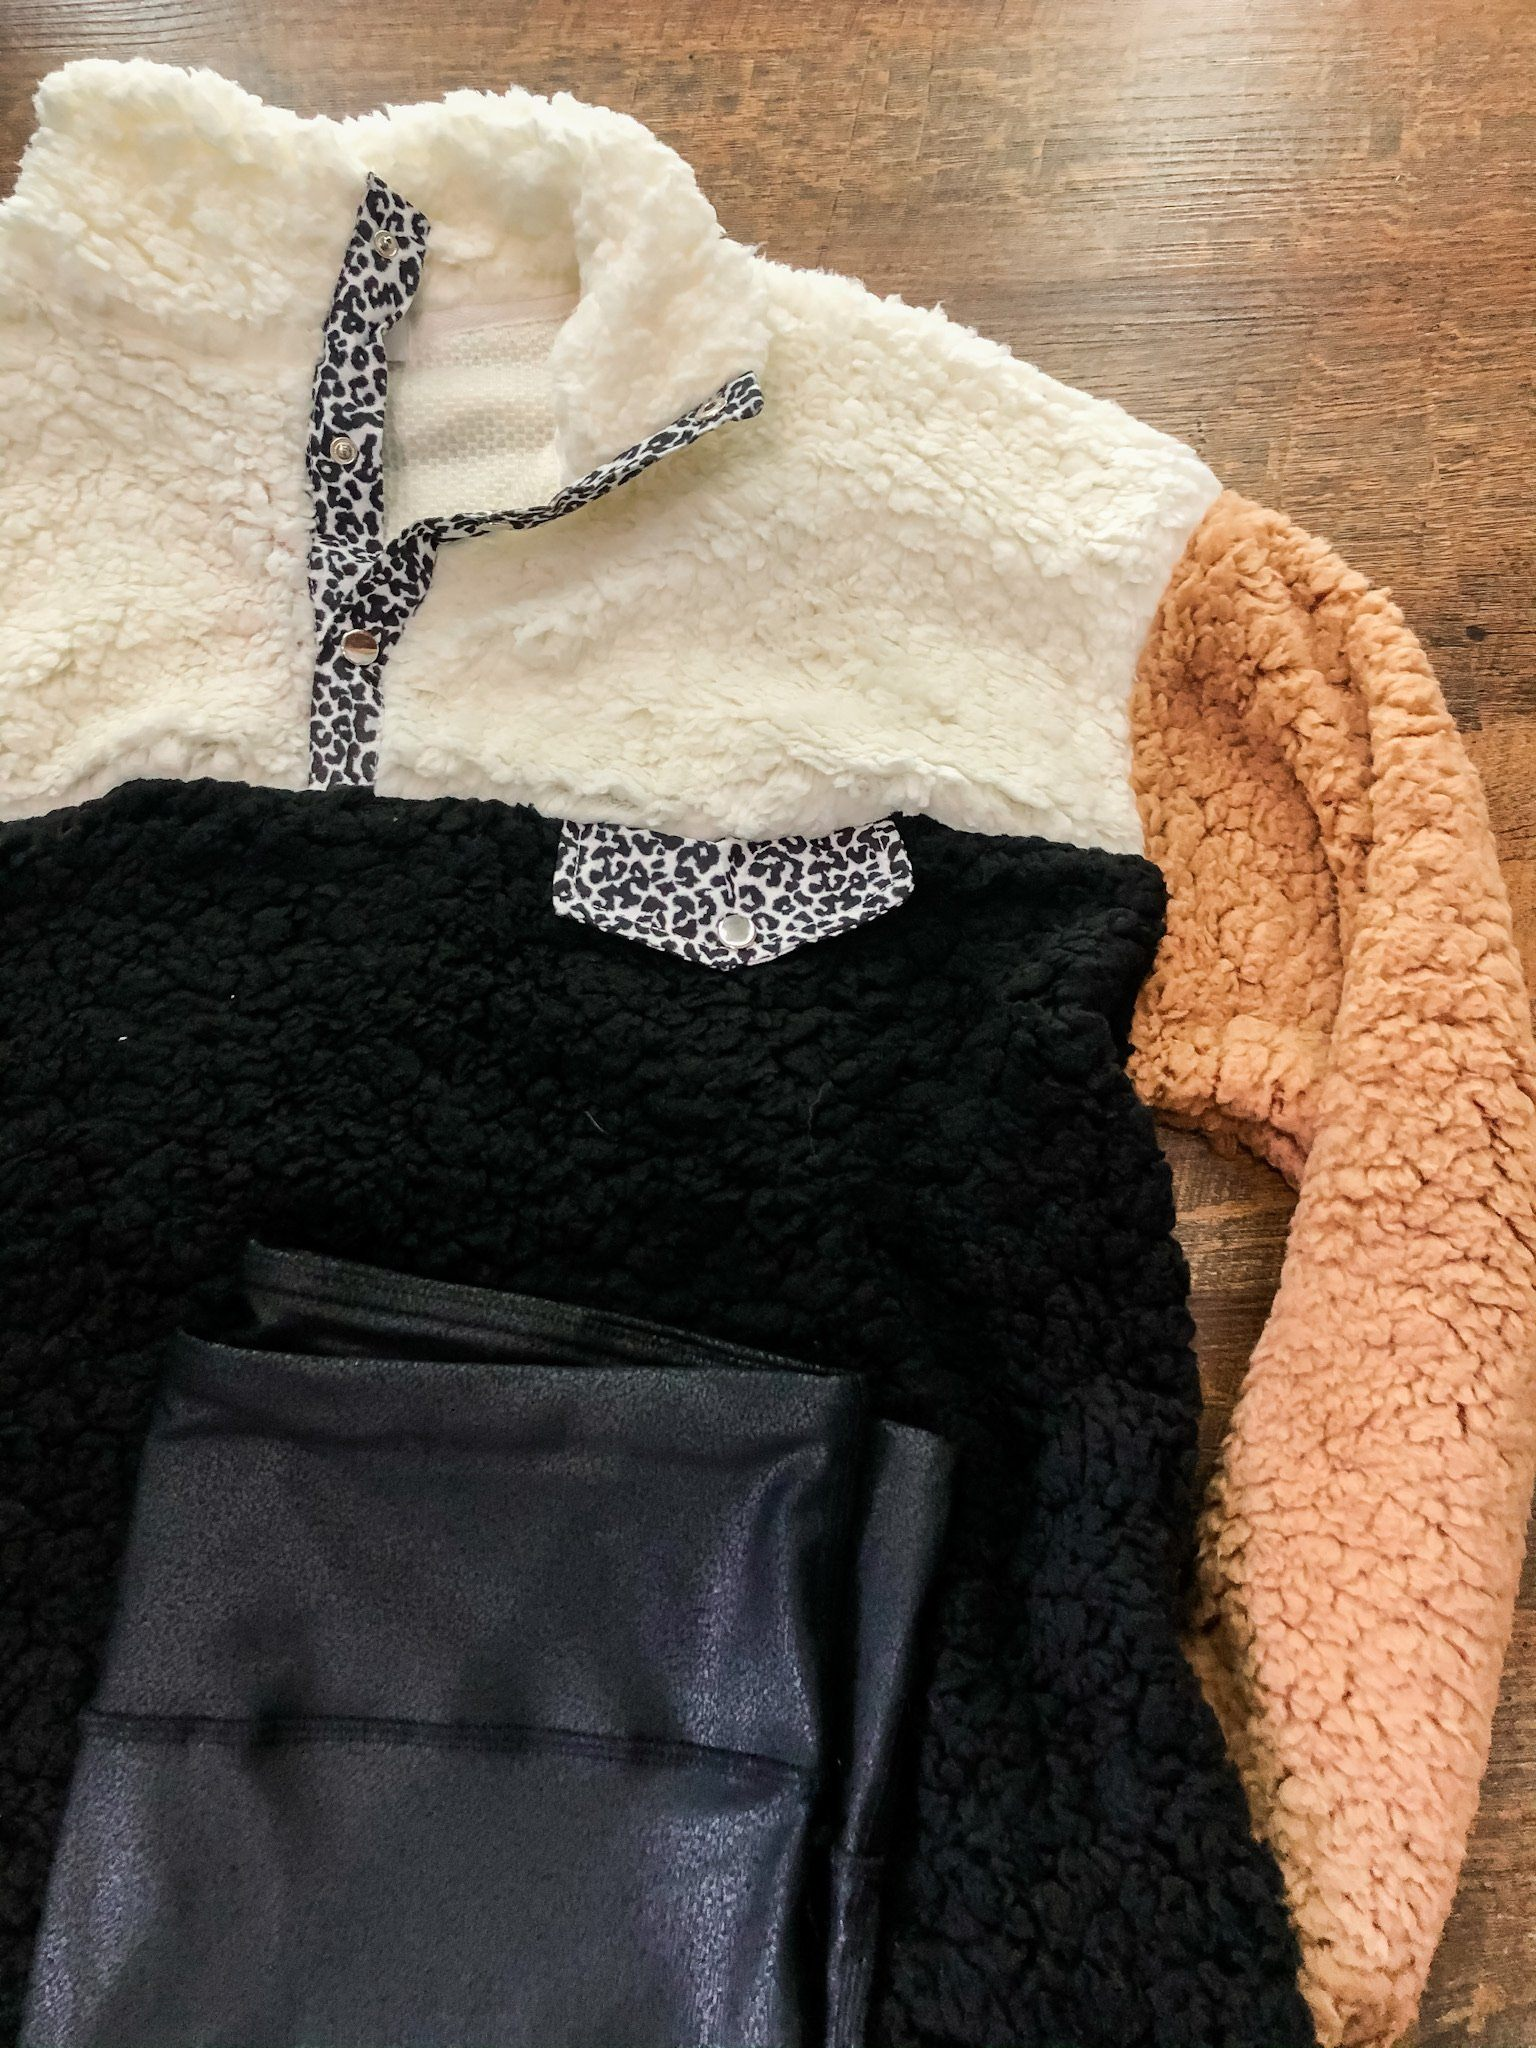 The Graham Colorblock Cheetah Sherpa Long sleeve Jess Lea